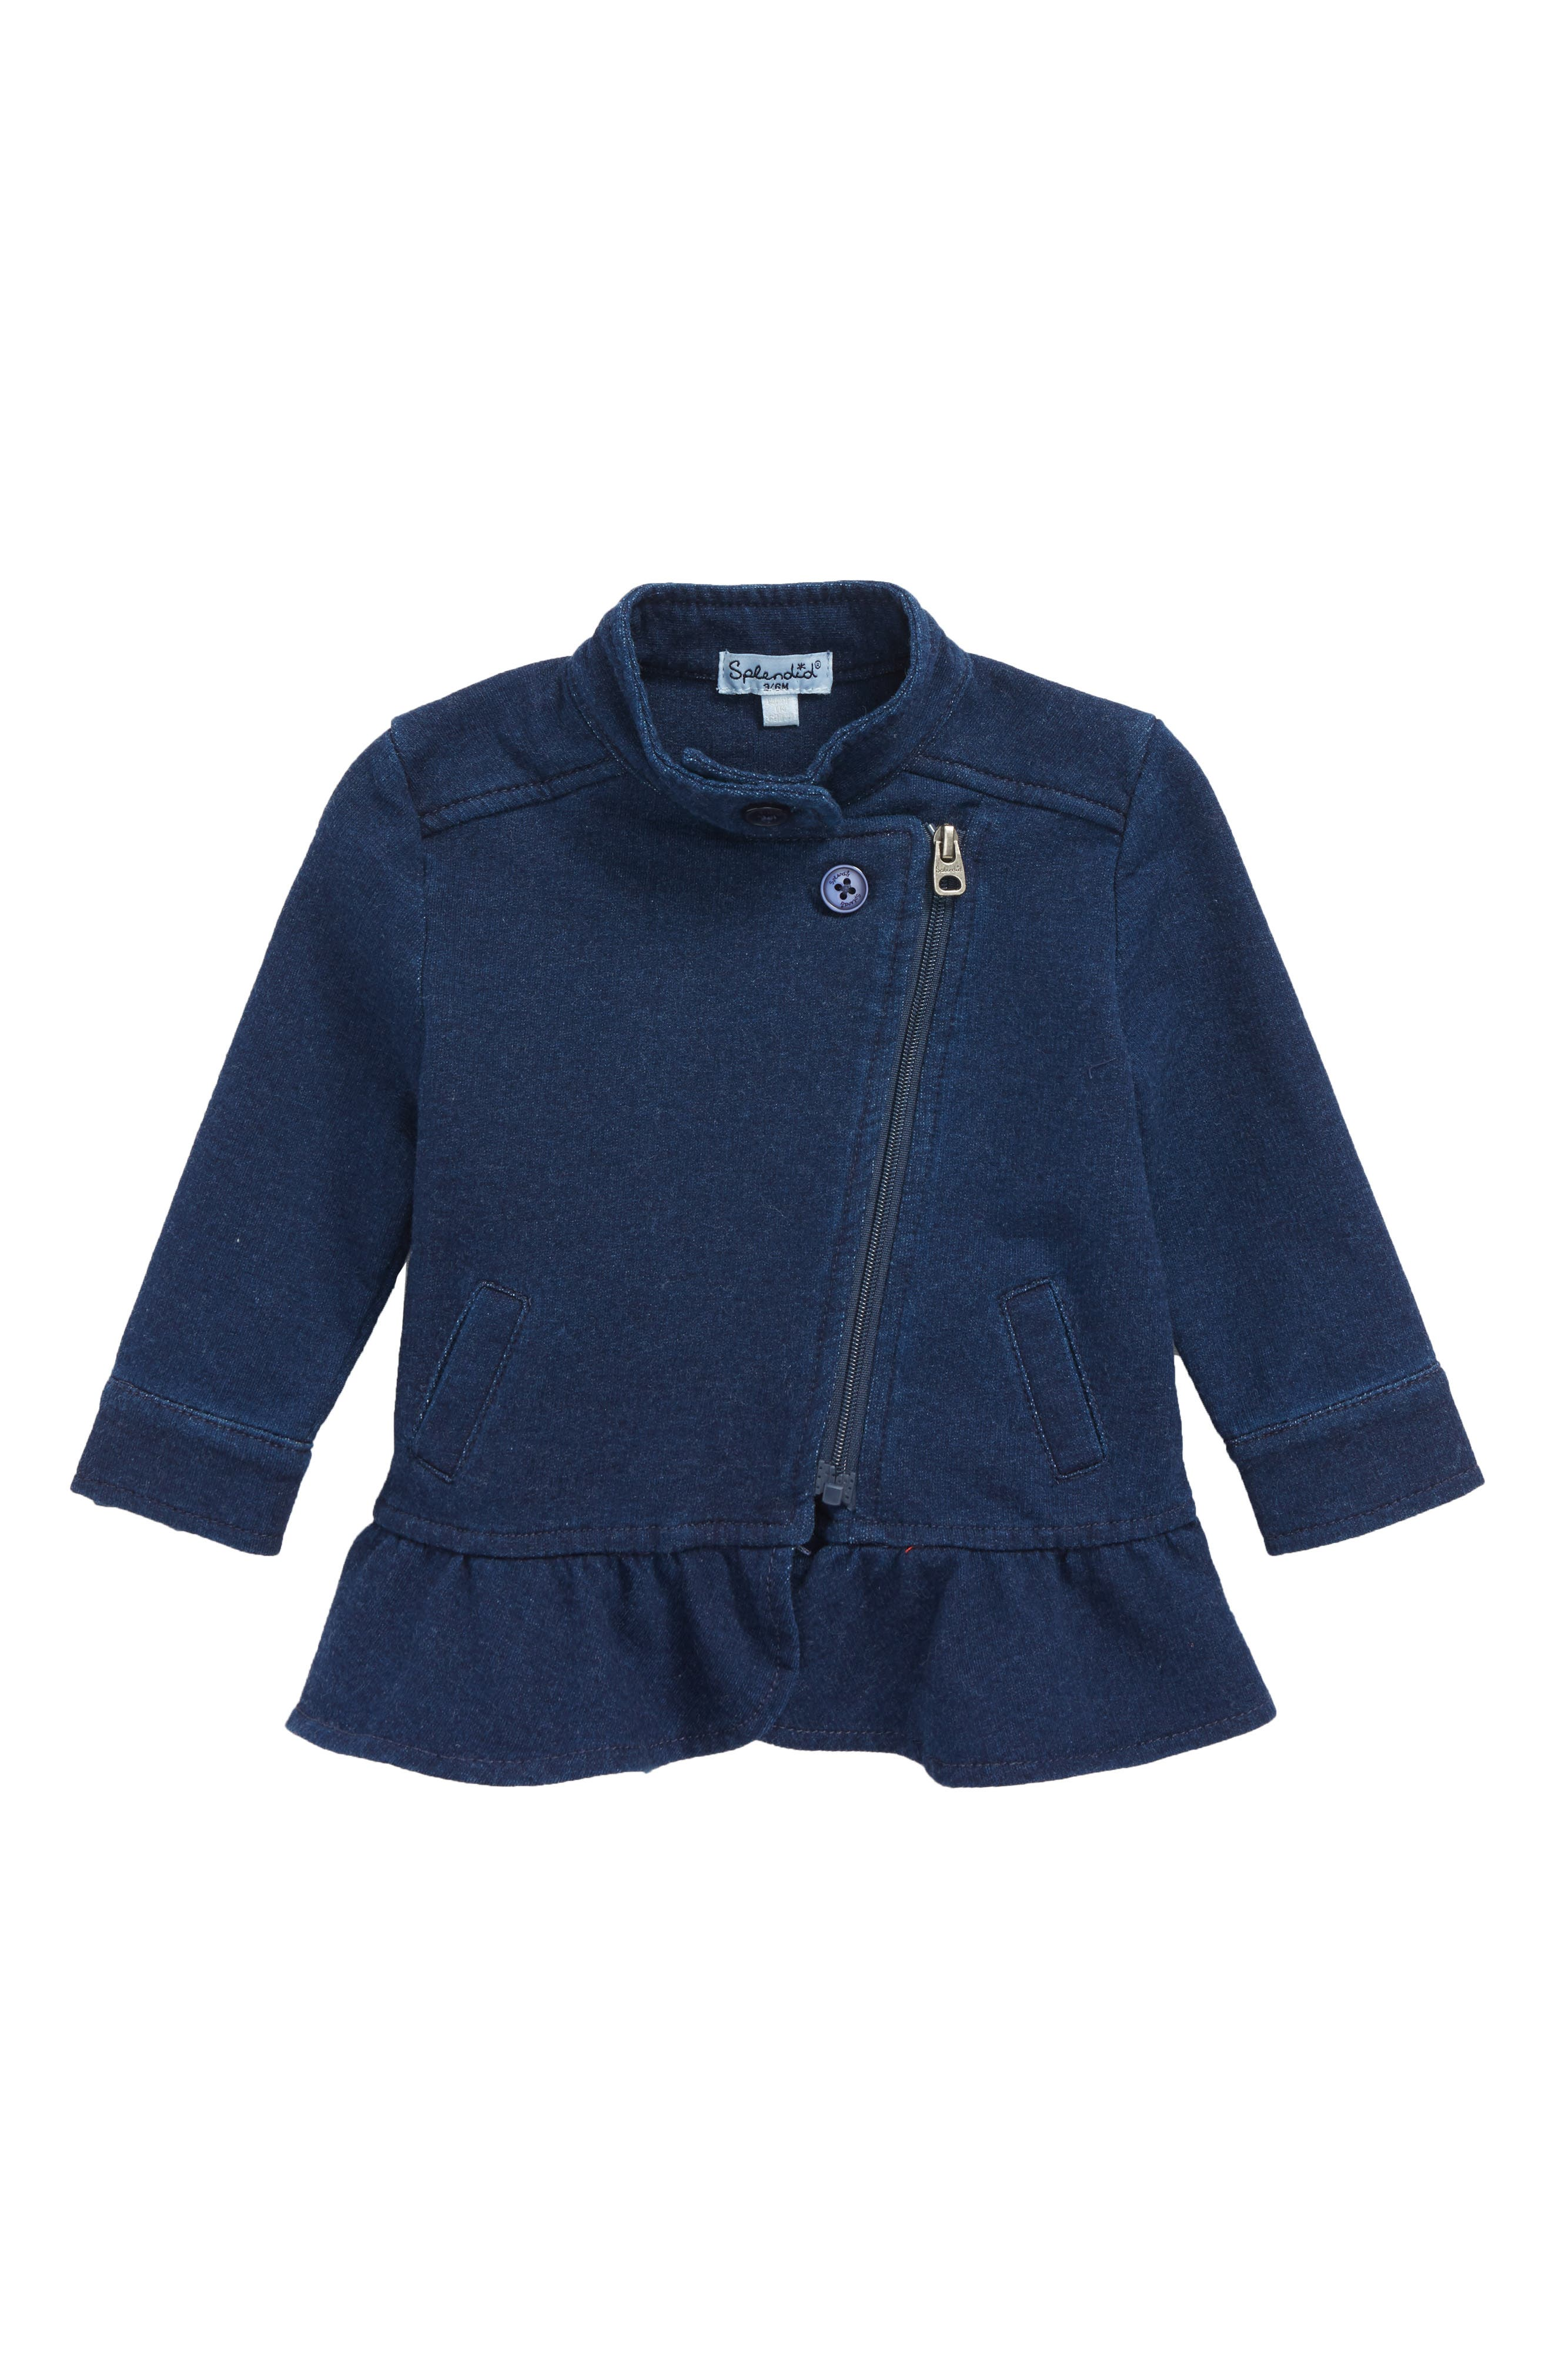 Main Image - Splendid Indigo Moto Jacket (Baby Girls)